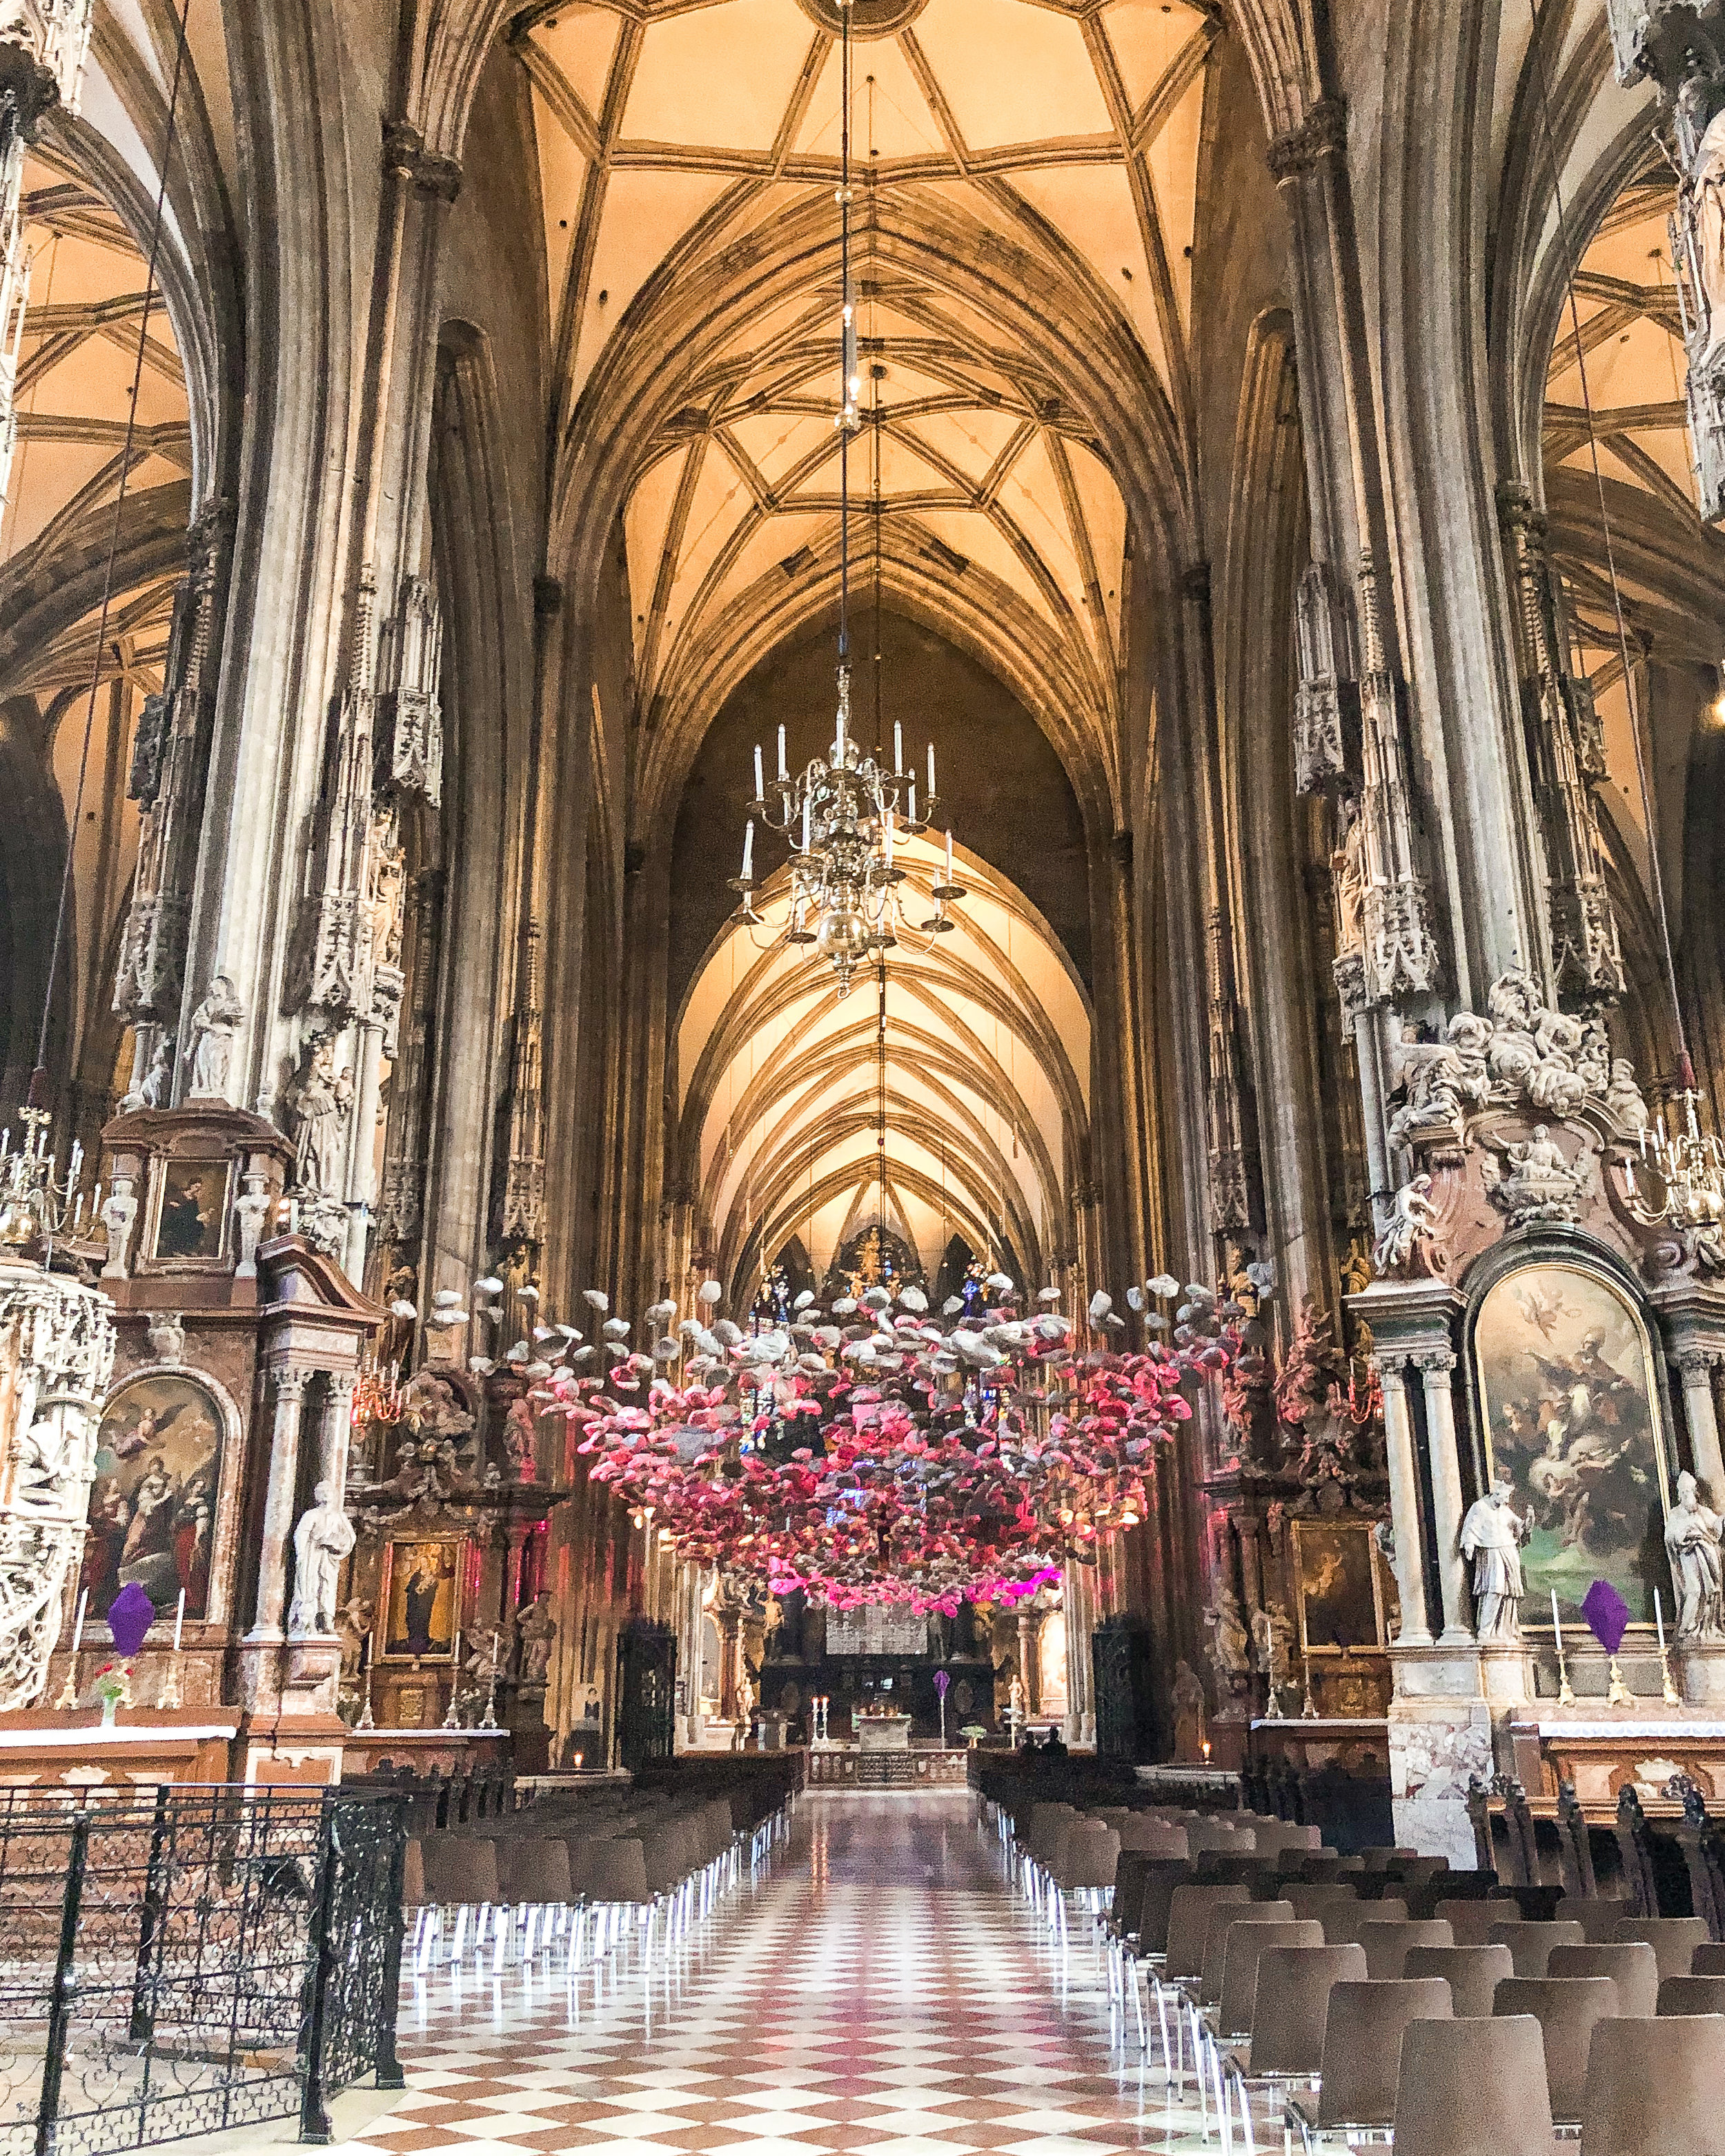 The beautiful hanging art installation inside the cathedral.